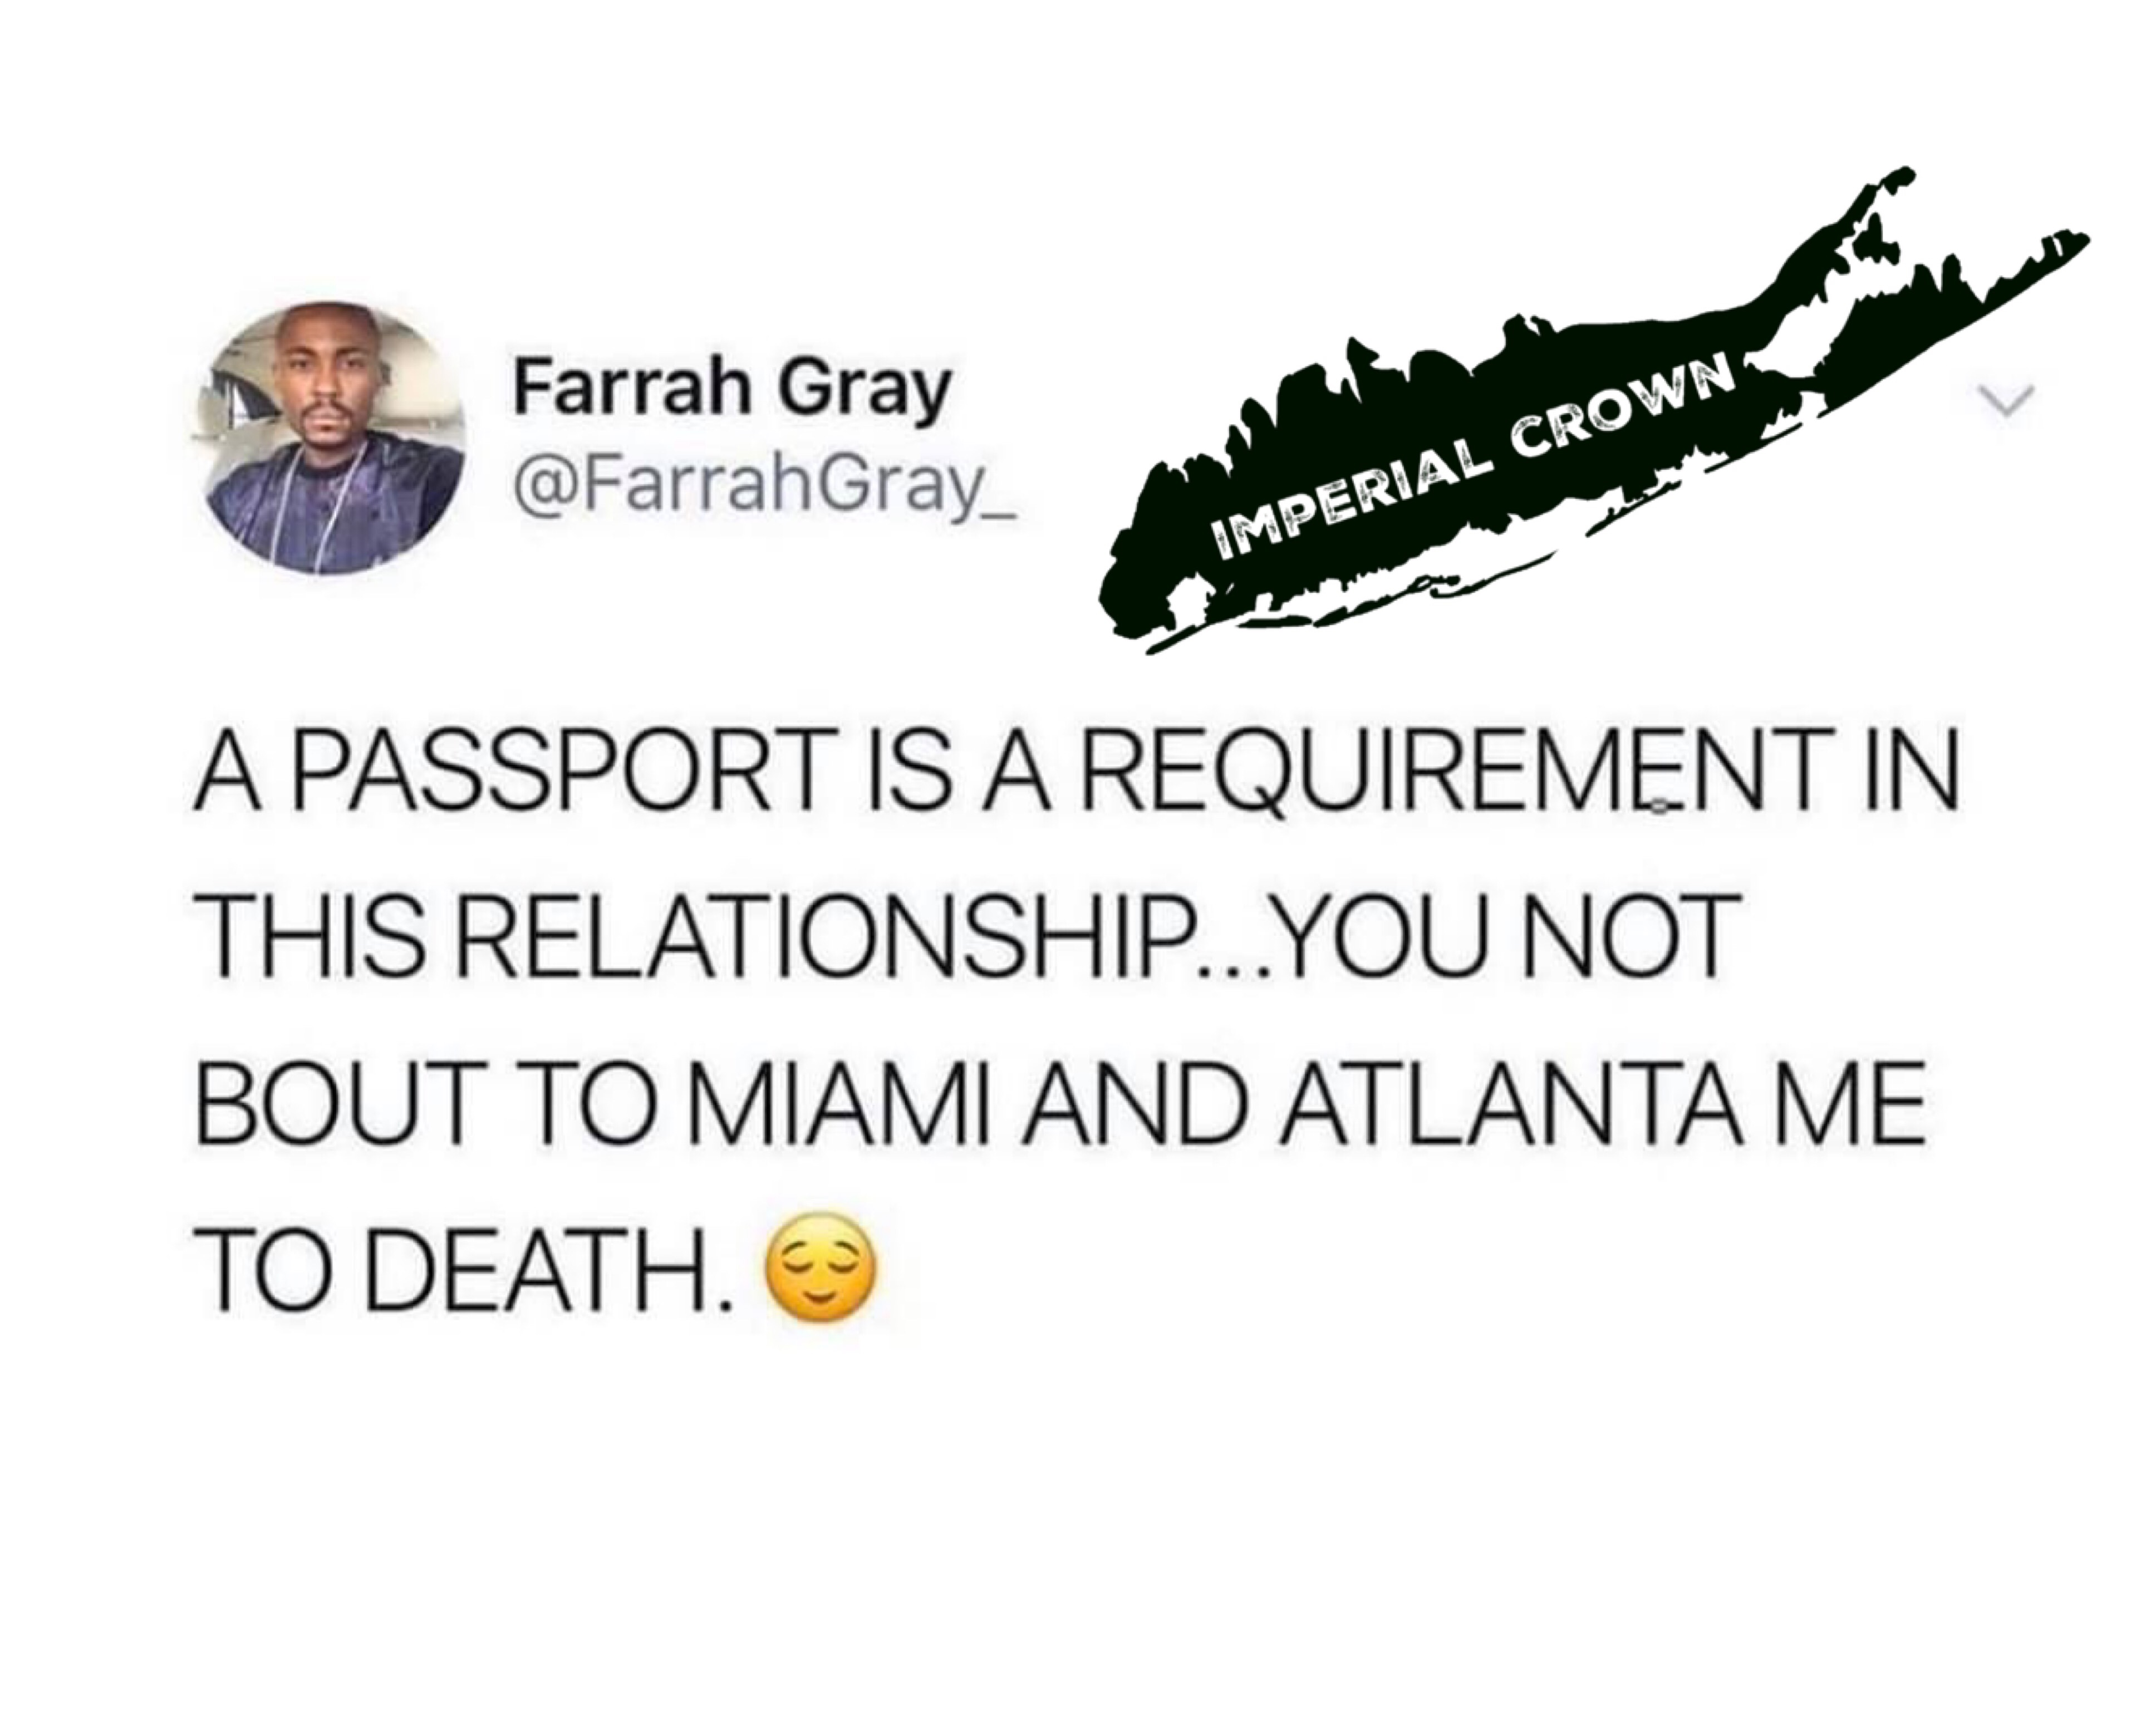 A passport is a requirement in this relationship you not about to Miami and Atlanta me to death